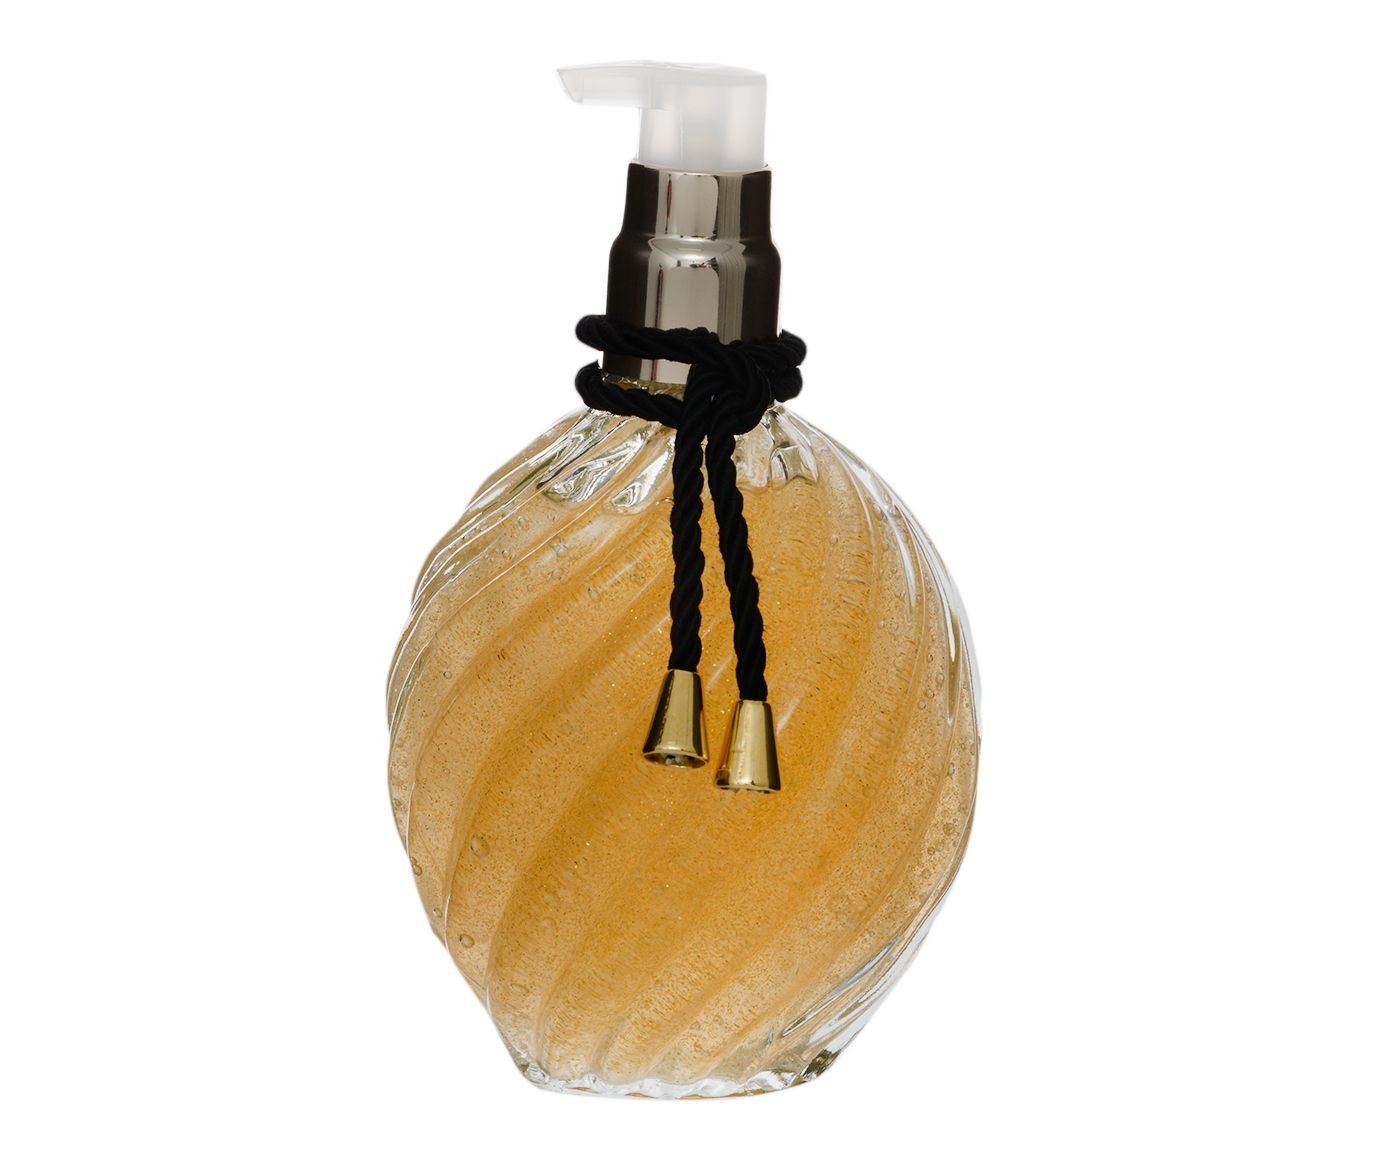 Sabonete Líquido Cannes Bamboo - 400ml   Westwing.com.br